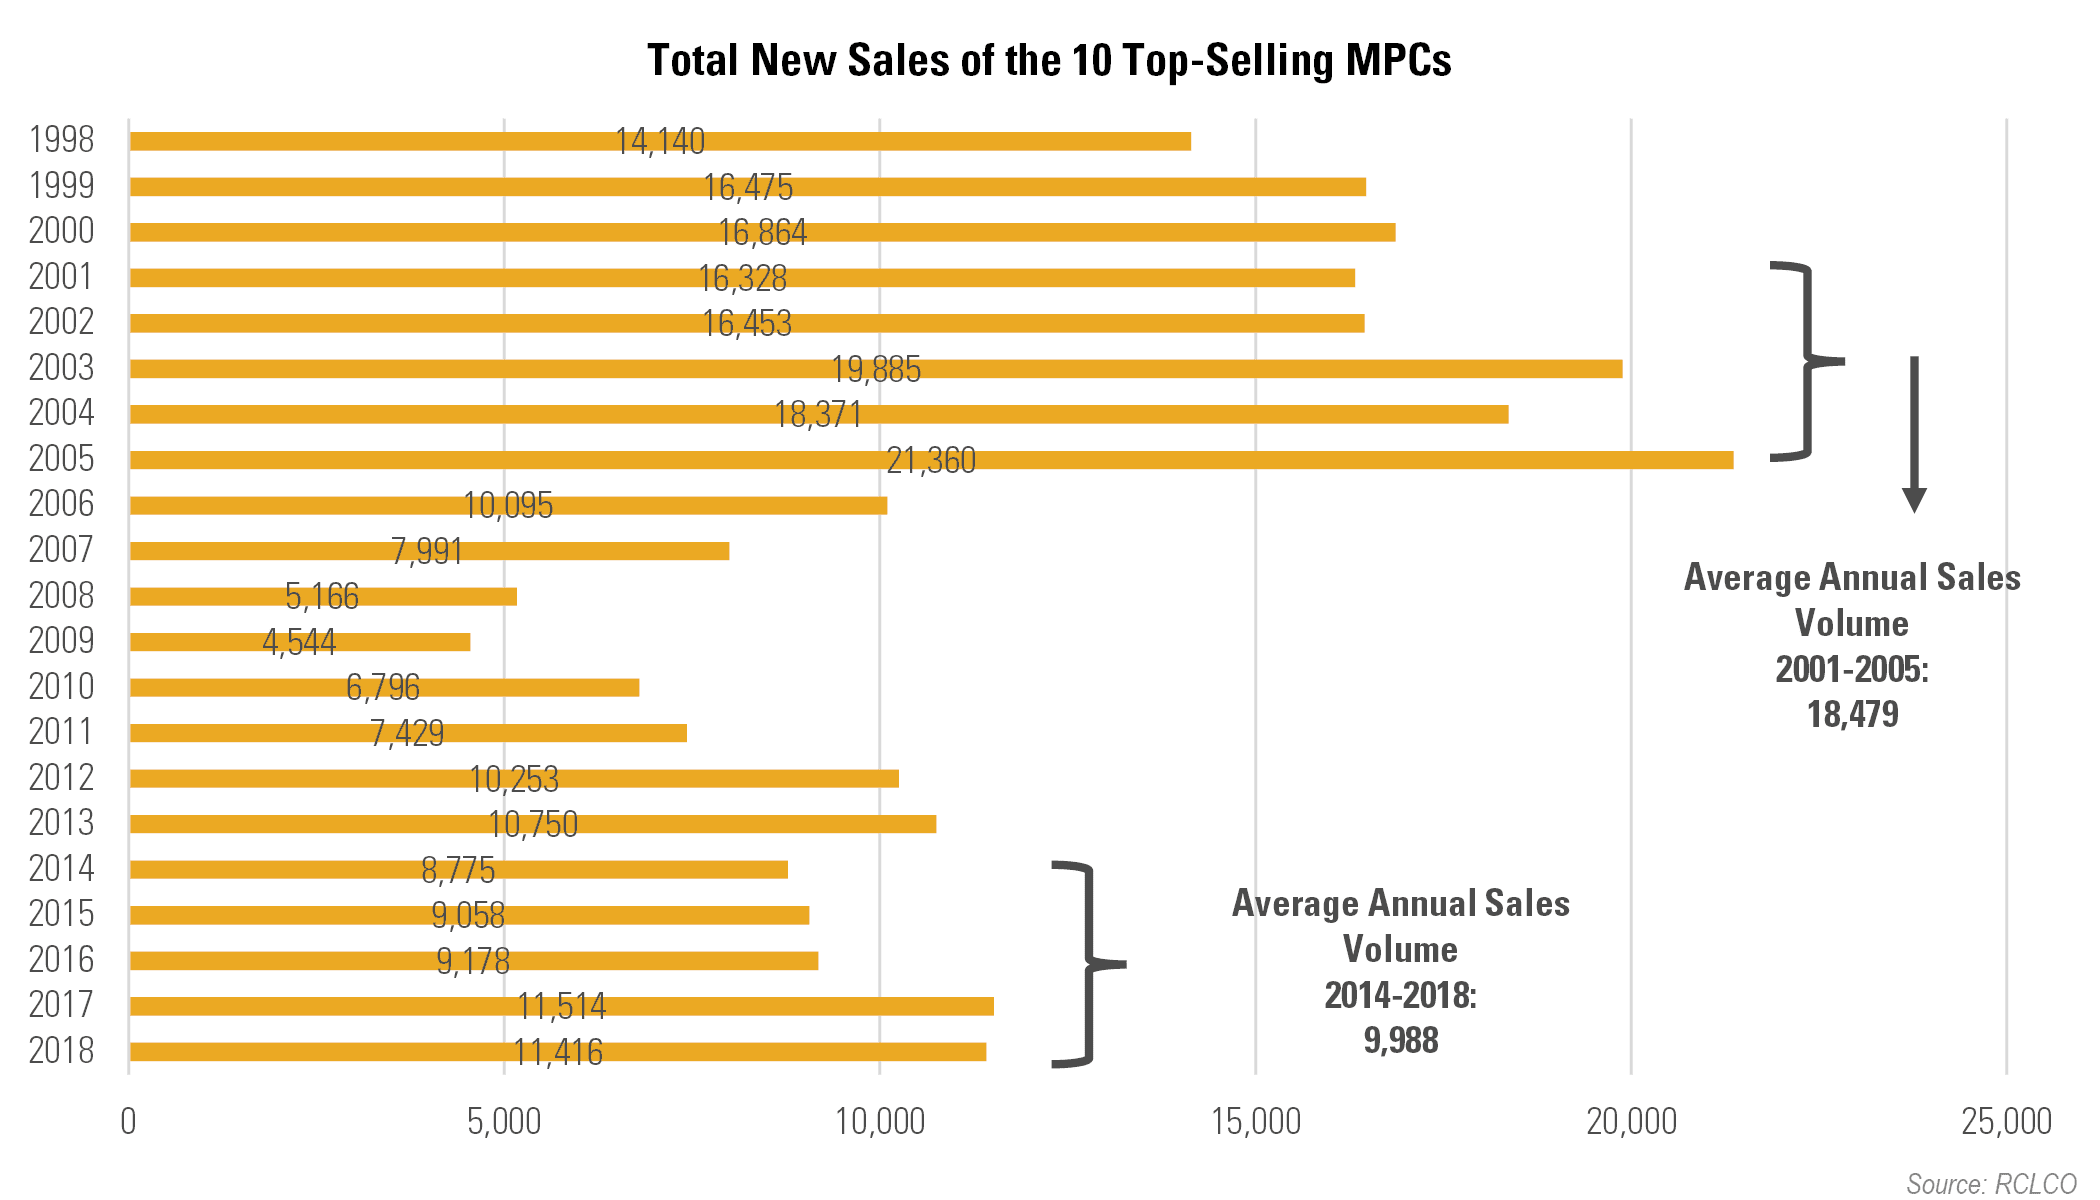 Advisory-Top-Selling-MPCs-Year-End-2018-Total-New-Sales